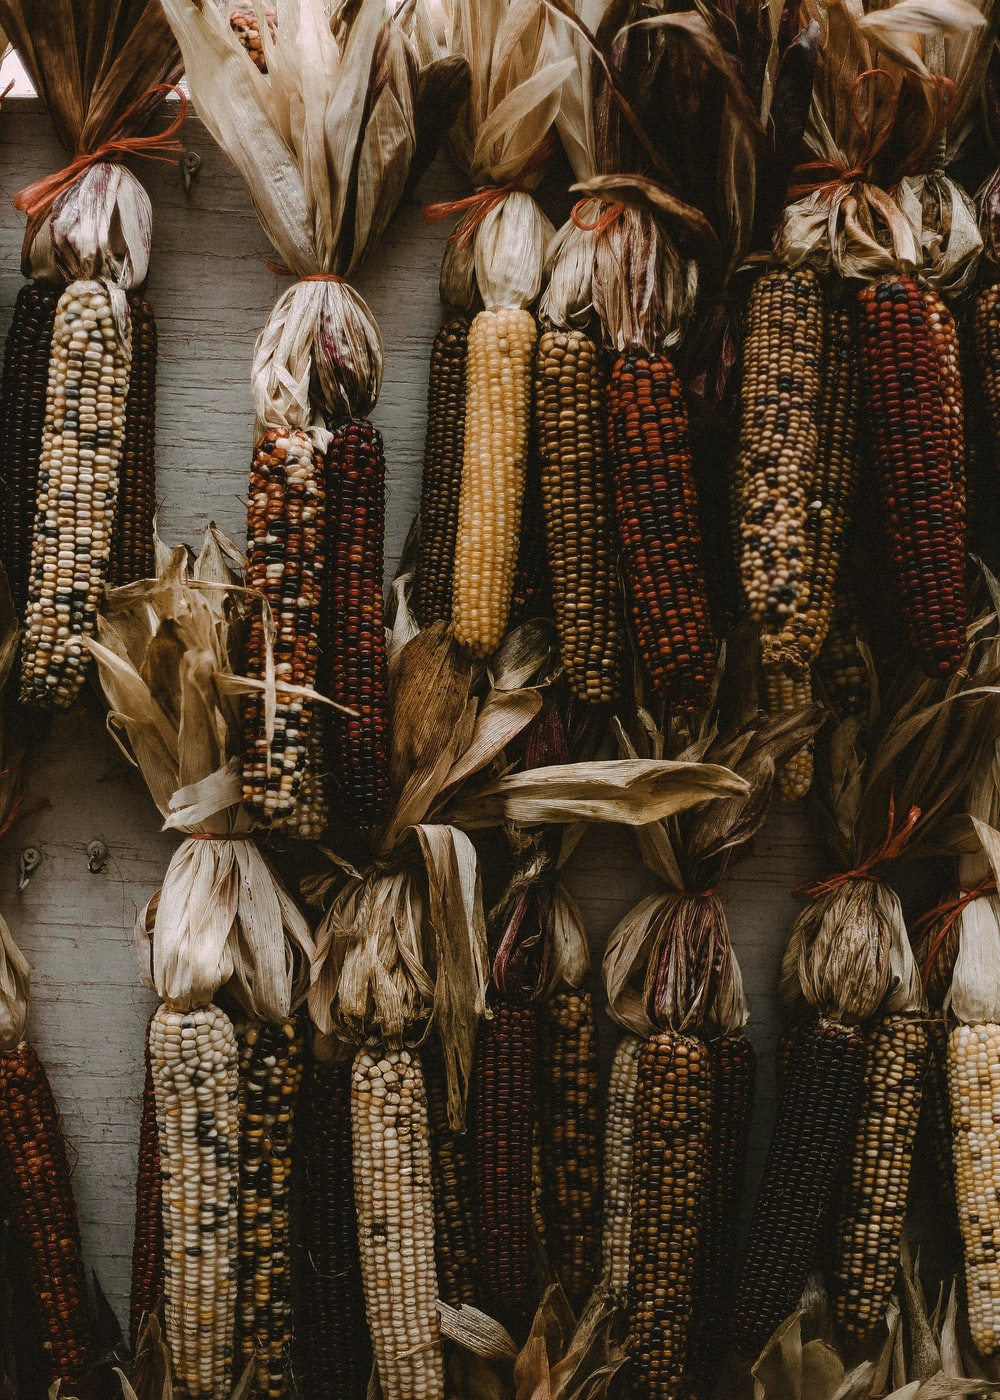 bunch of grilled corns